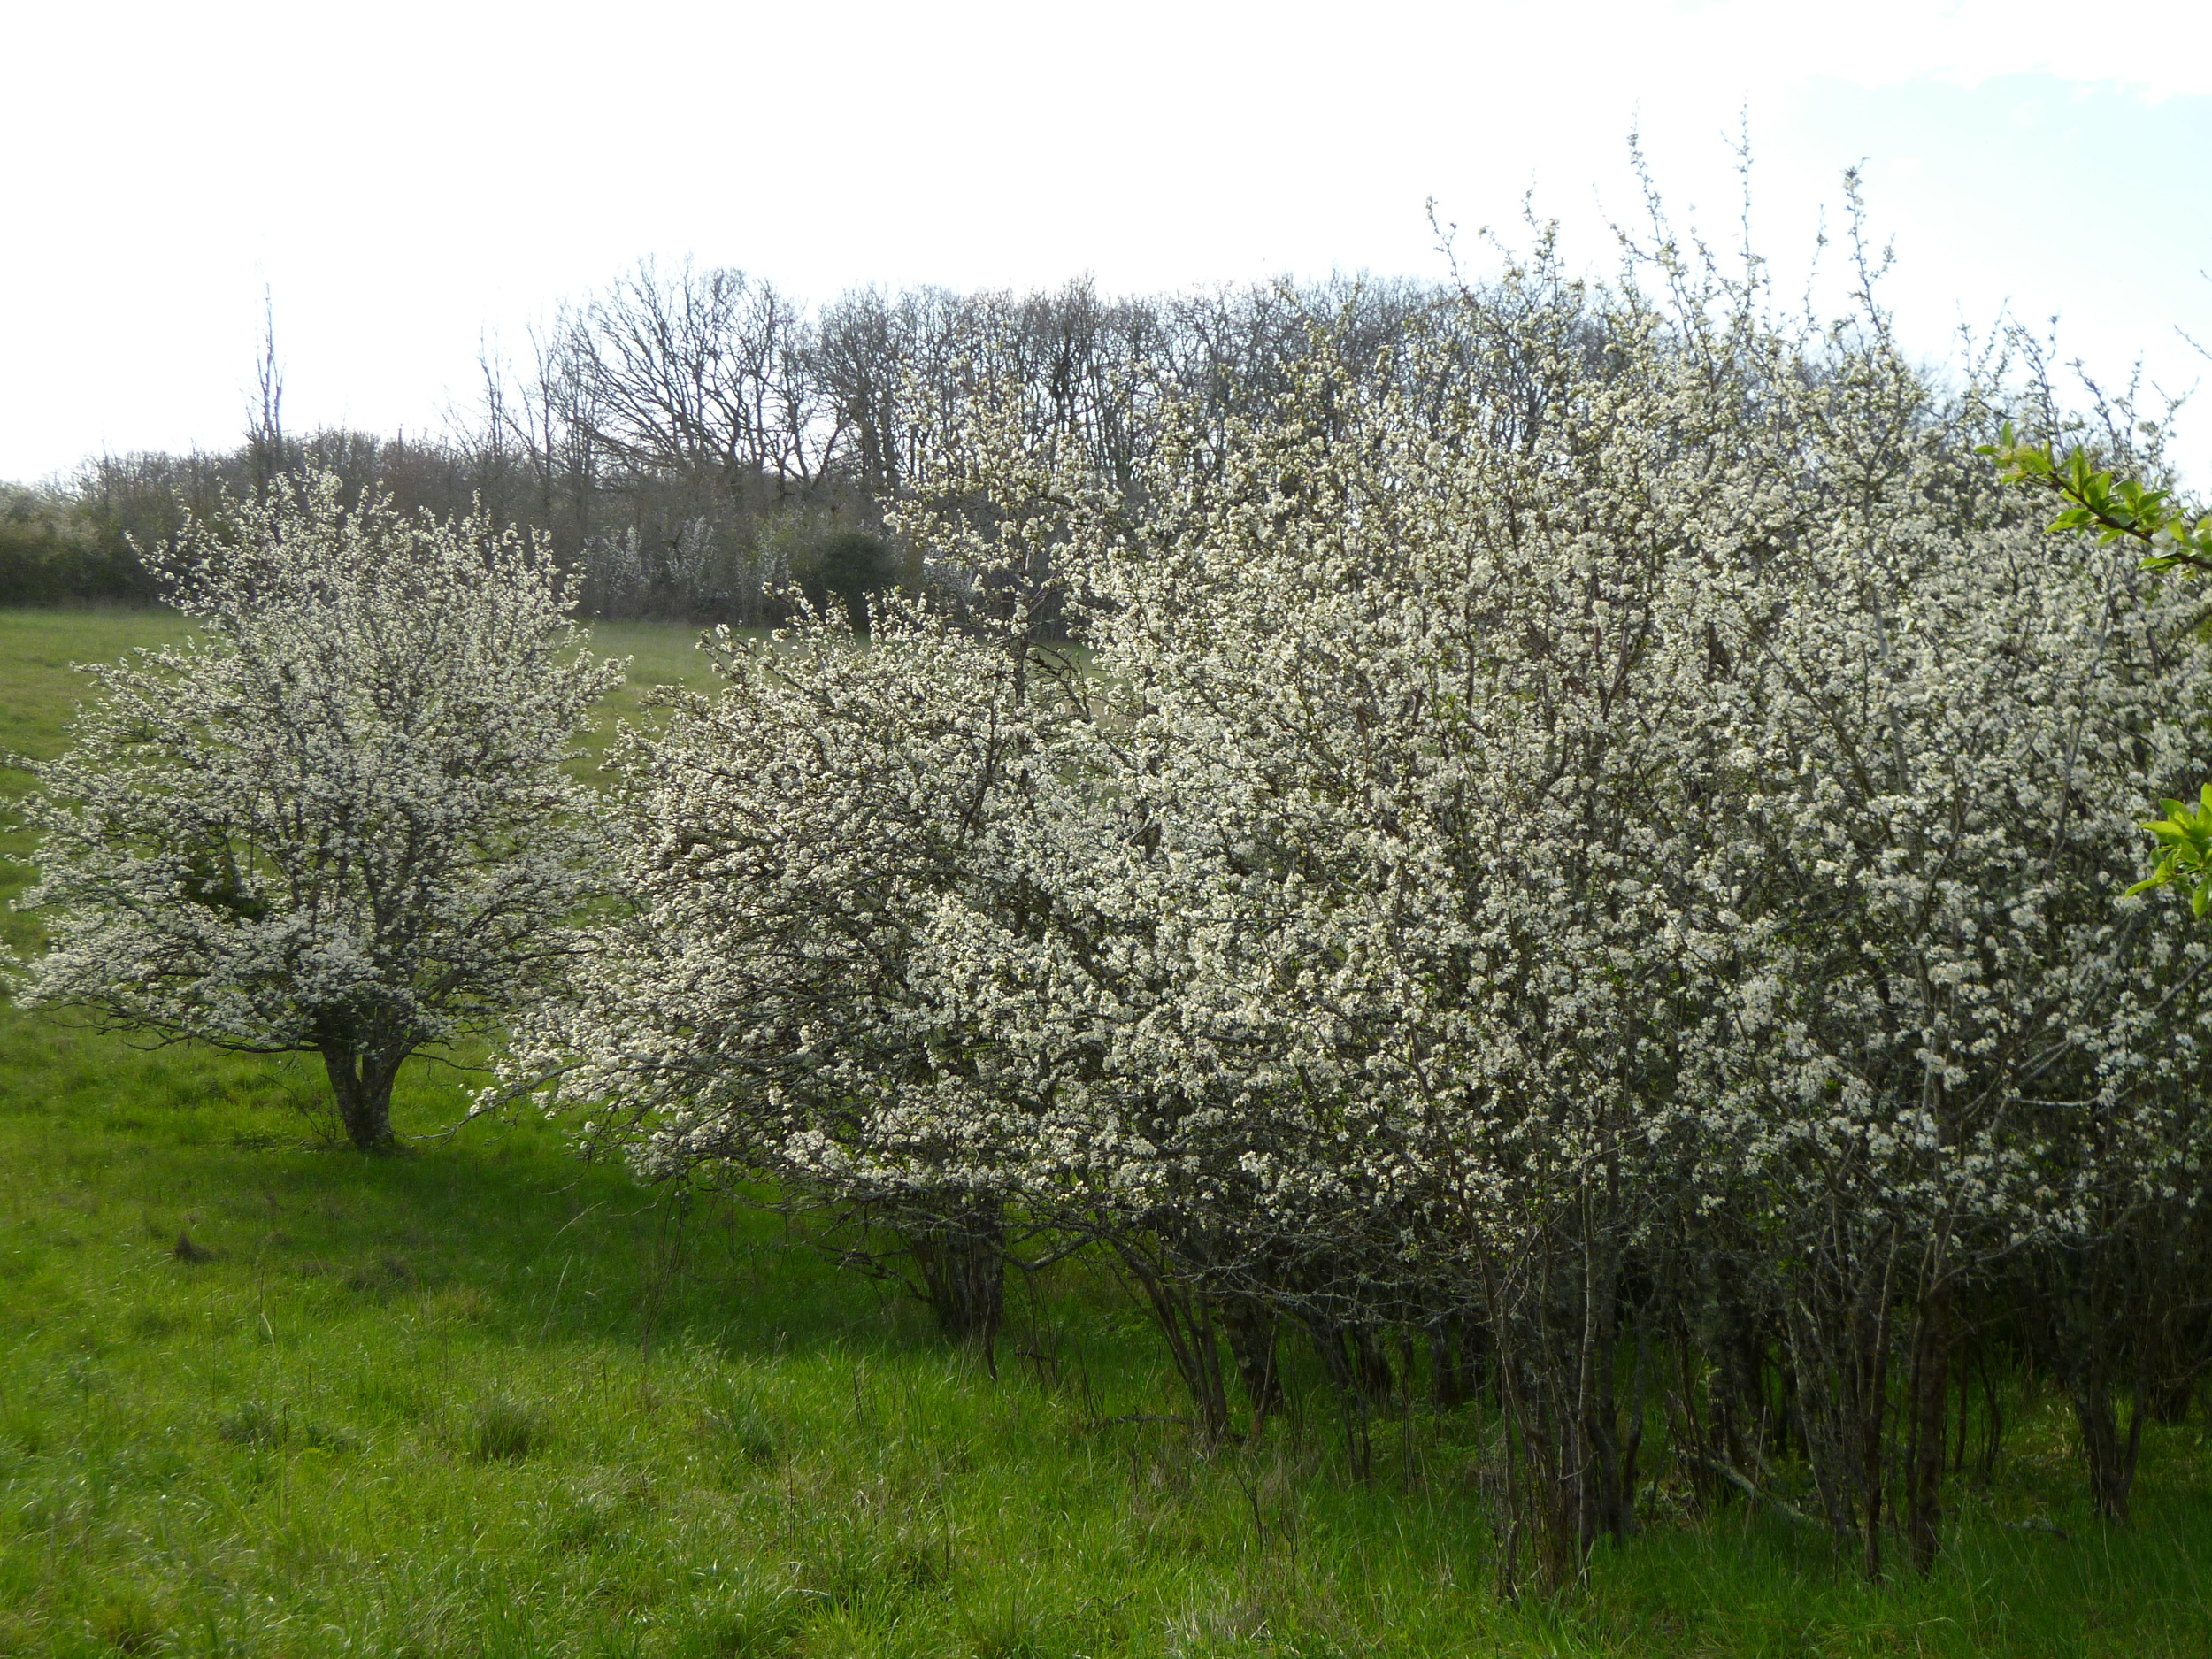 A second phase of blossom. Some of the trees in the orchard have already blossomed and now have green leaves.